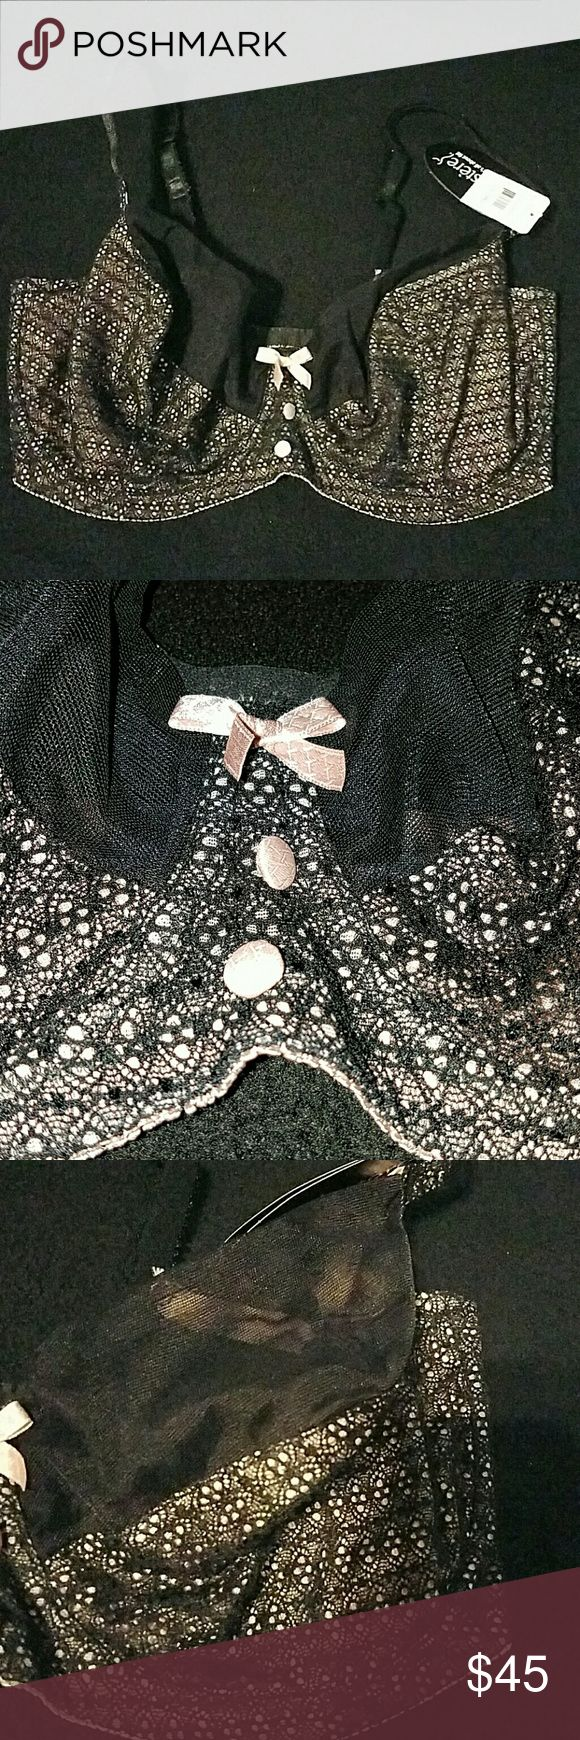 38G Le Mystere #2114 Unlined Bra Gorgeous black lace over nude cups with sheer mesh on cups and back. NWT!!! Le Mystere Intimates & Sleepwear Bras